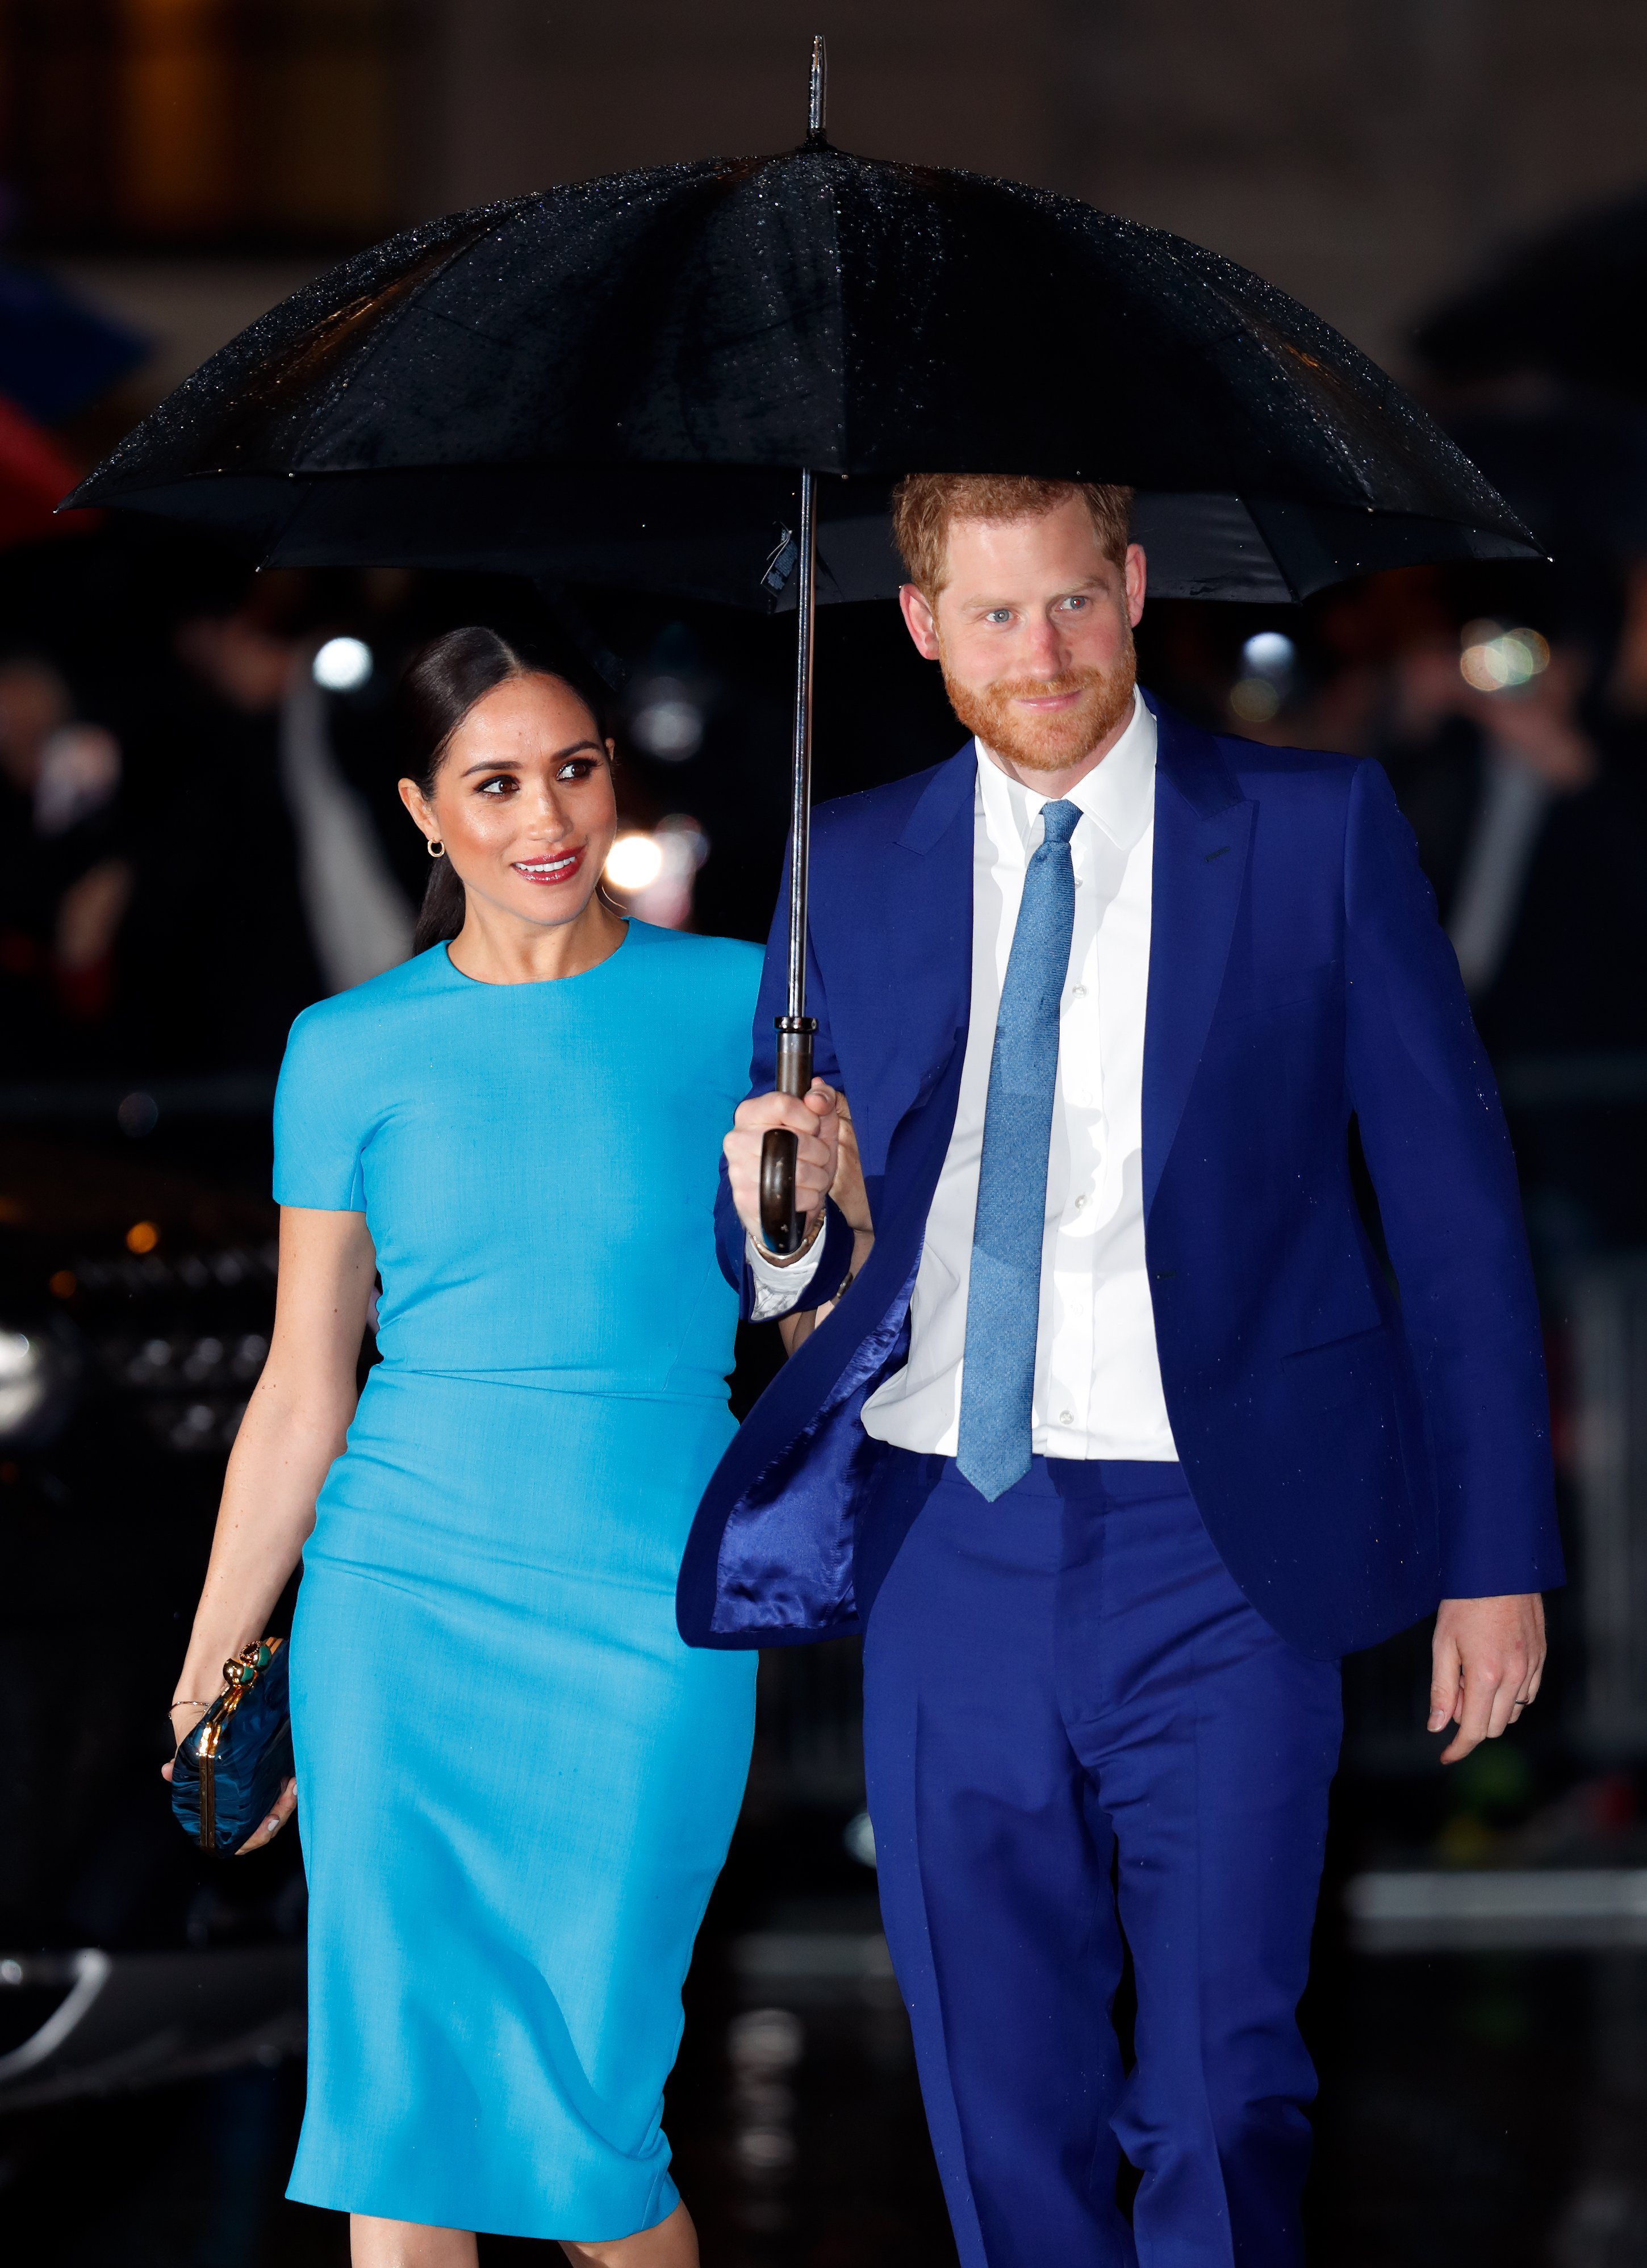 Meghan Markle and Prince Harry attend The Endeavour Fund Awards on March 5, 2020, in London, England. | Source: Getty Images.